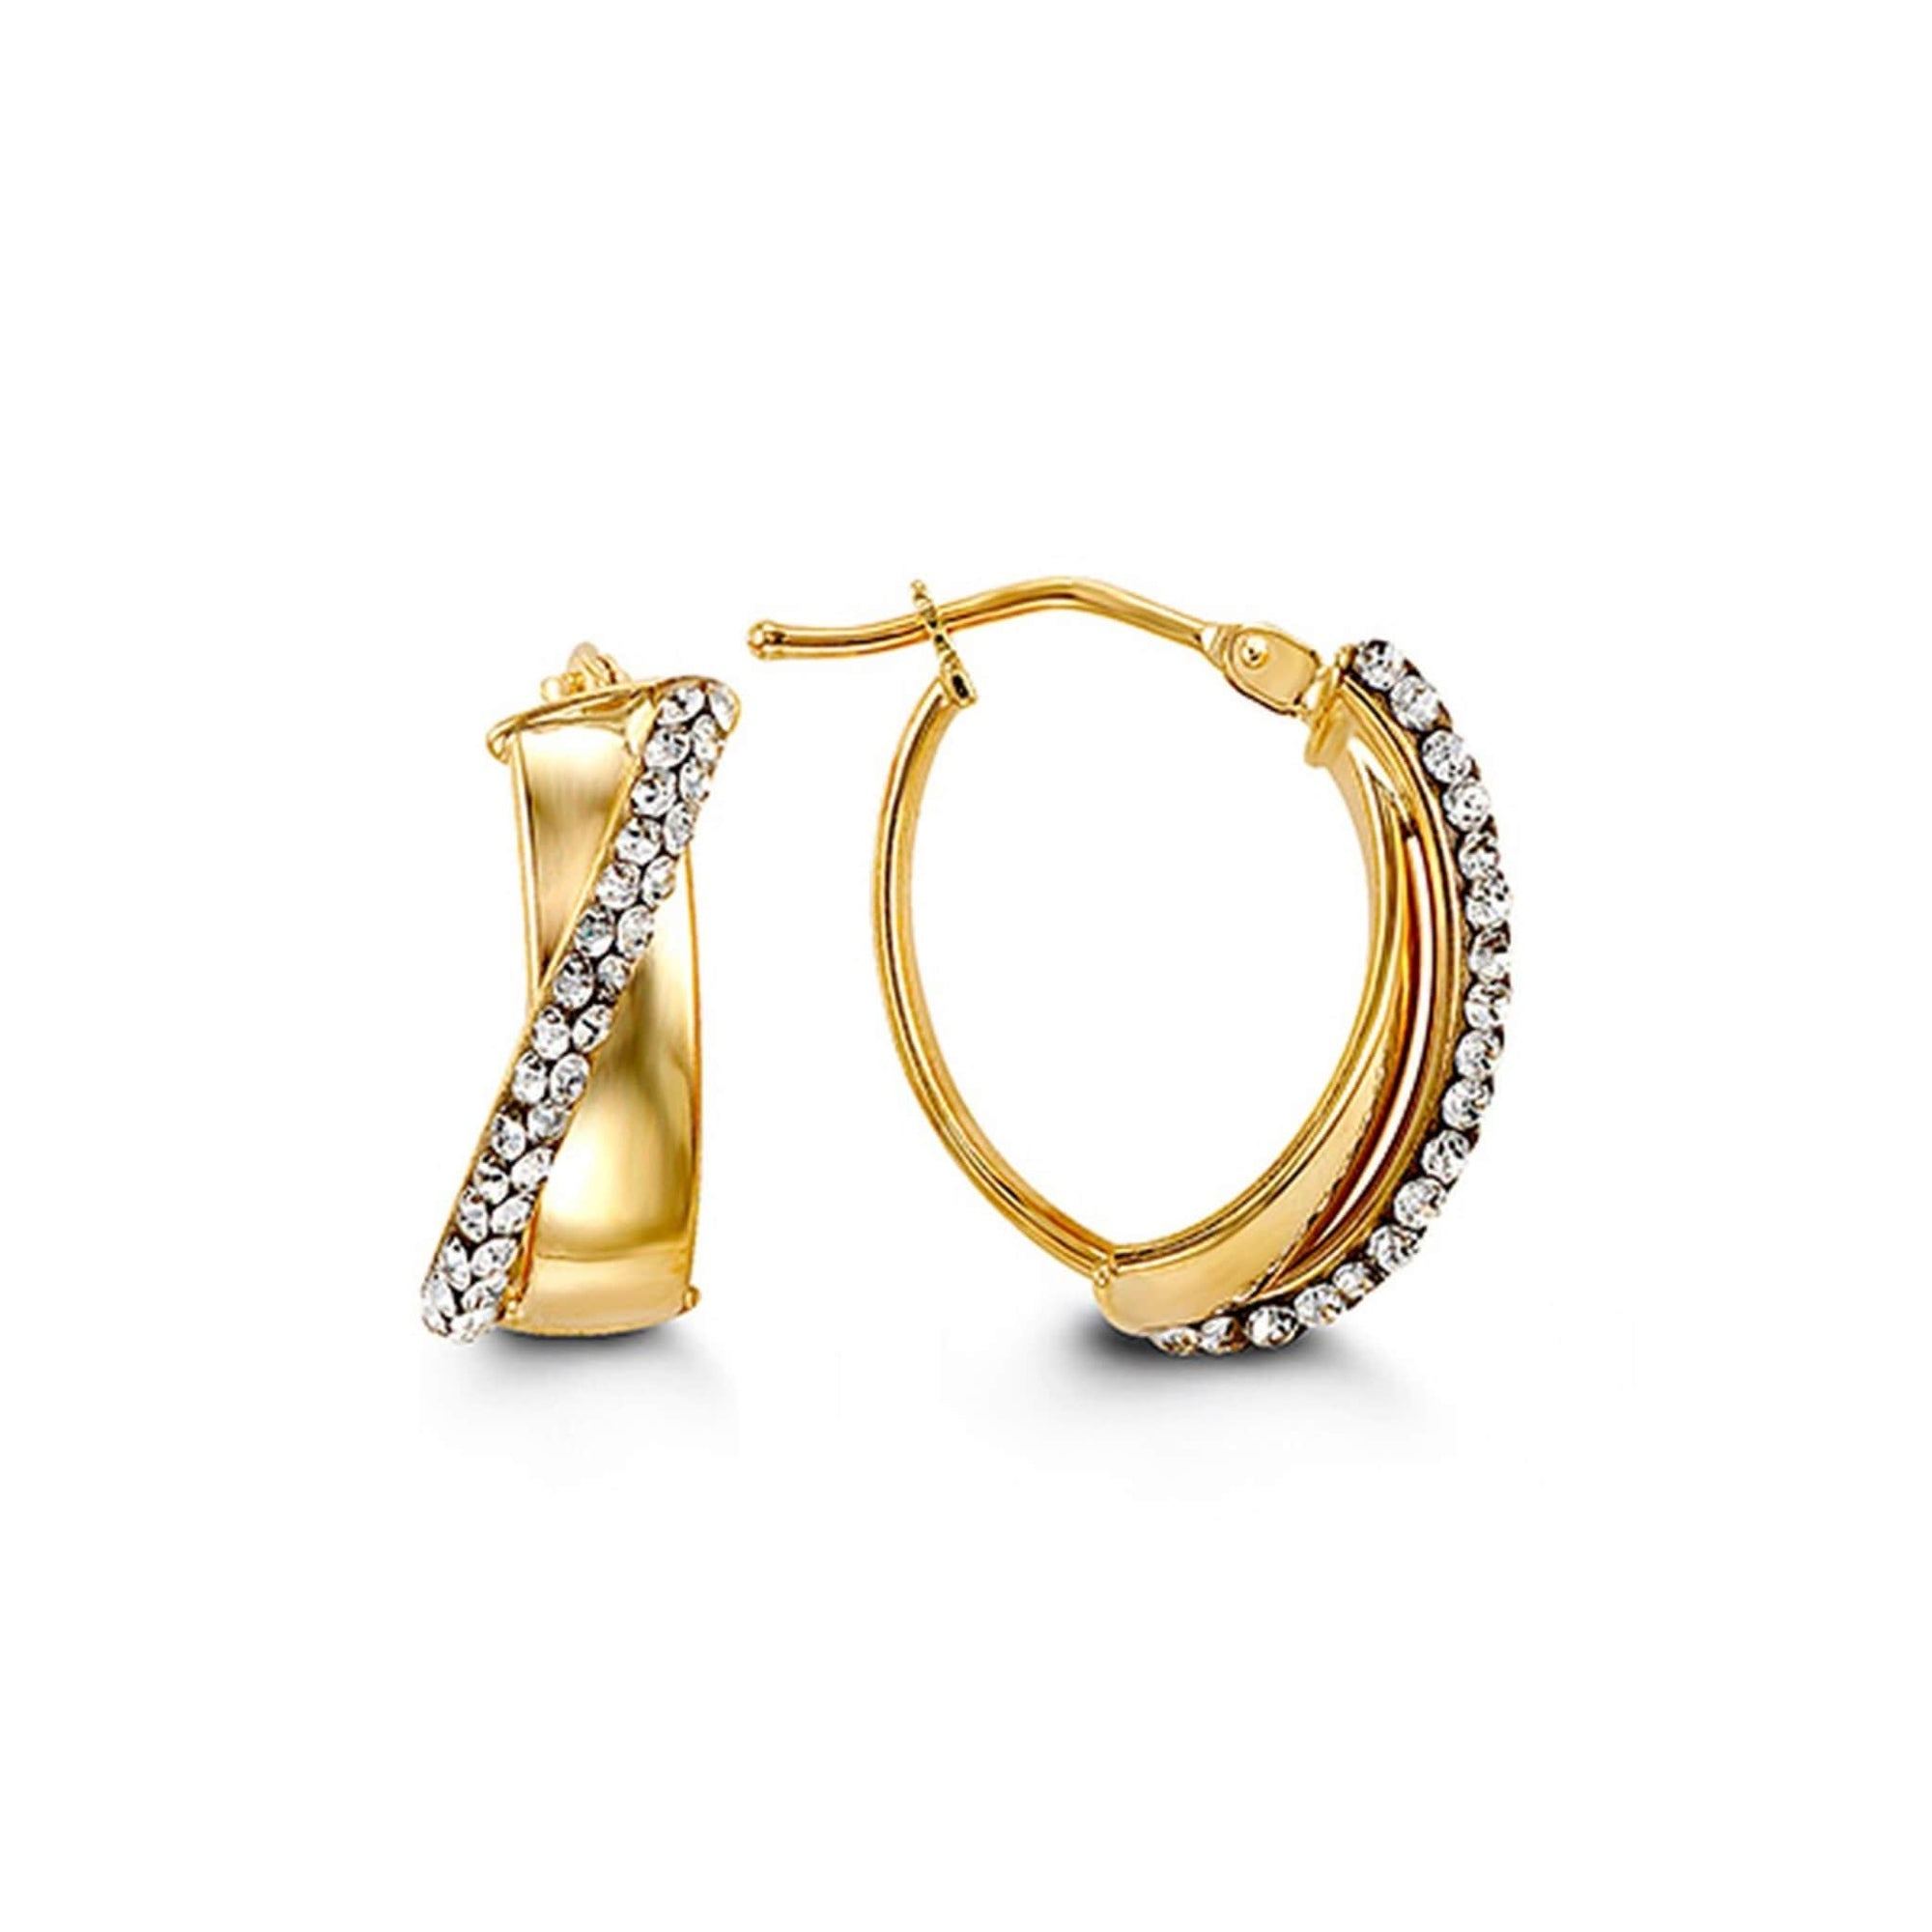 10K Yellow Gold Fancy CZ Hoop Earrings at Arman's Jewellers